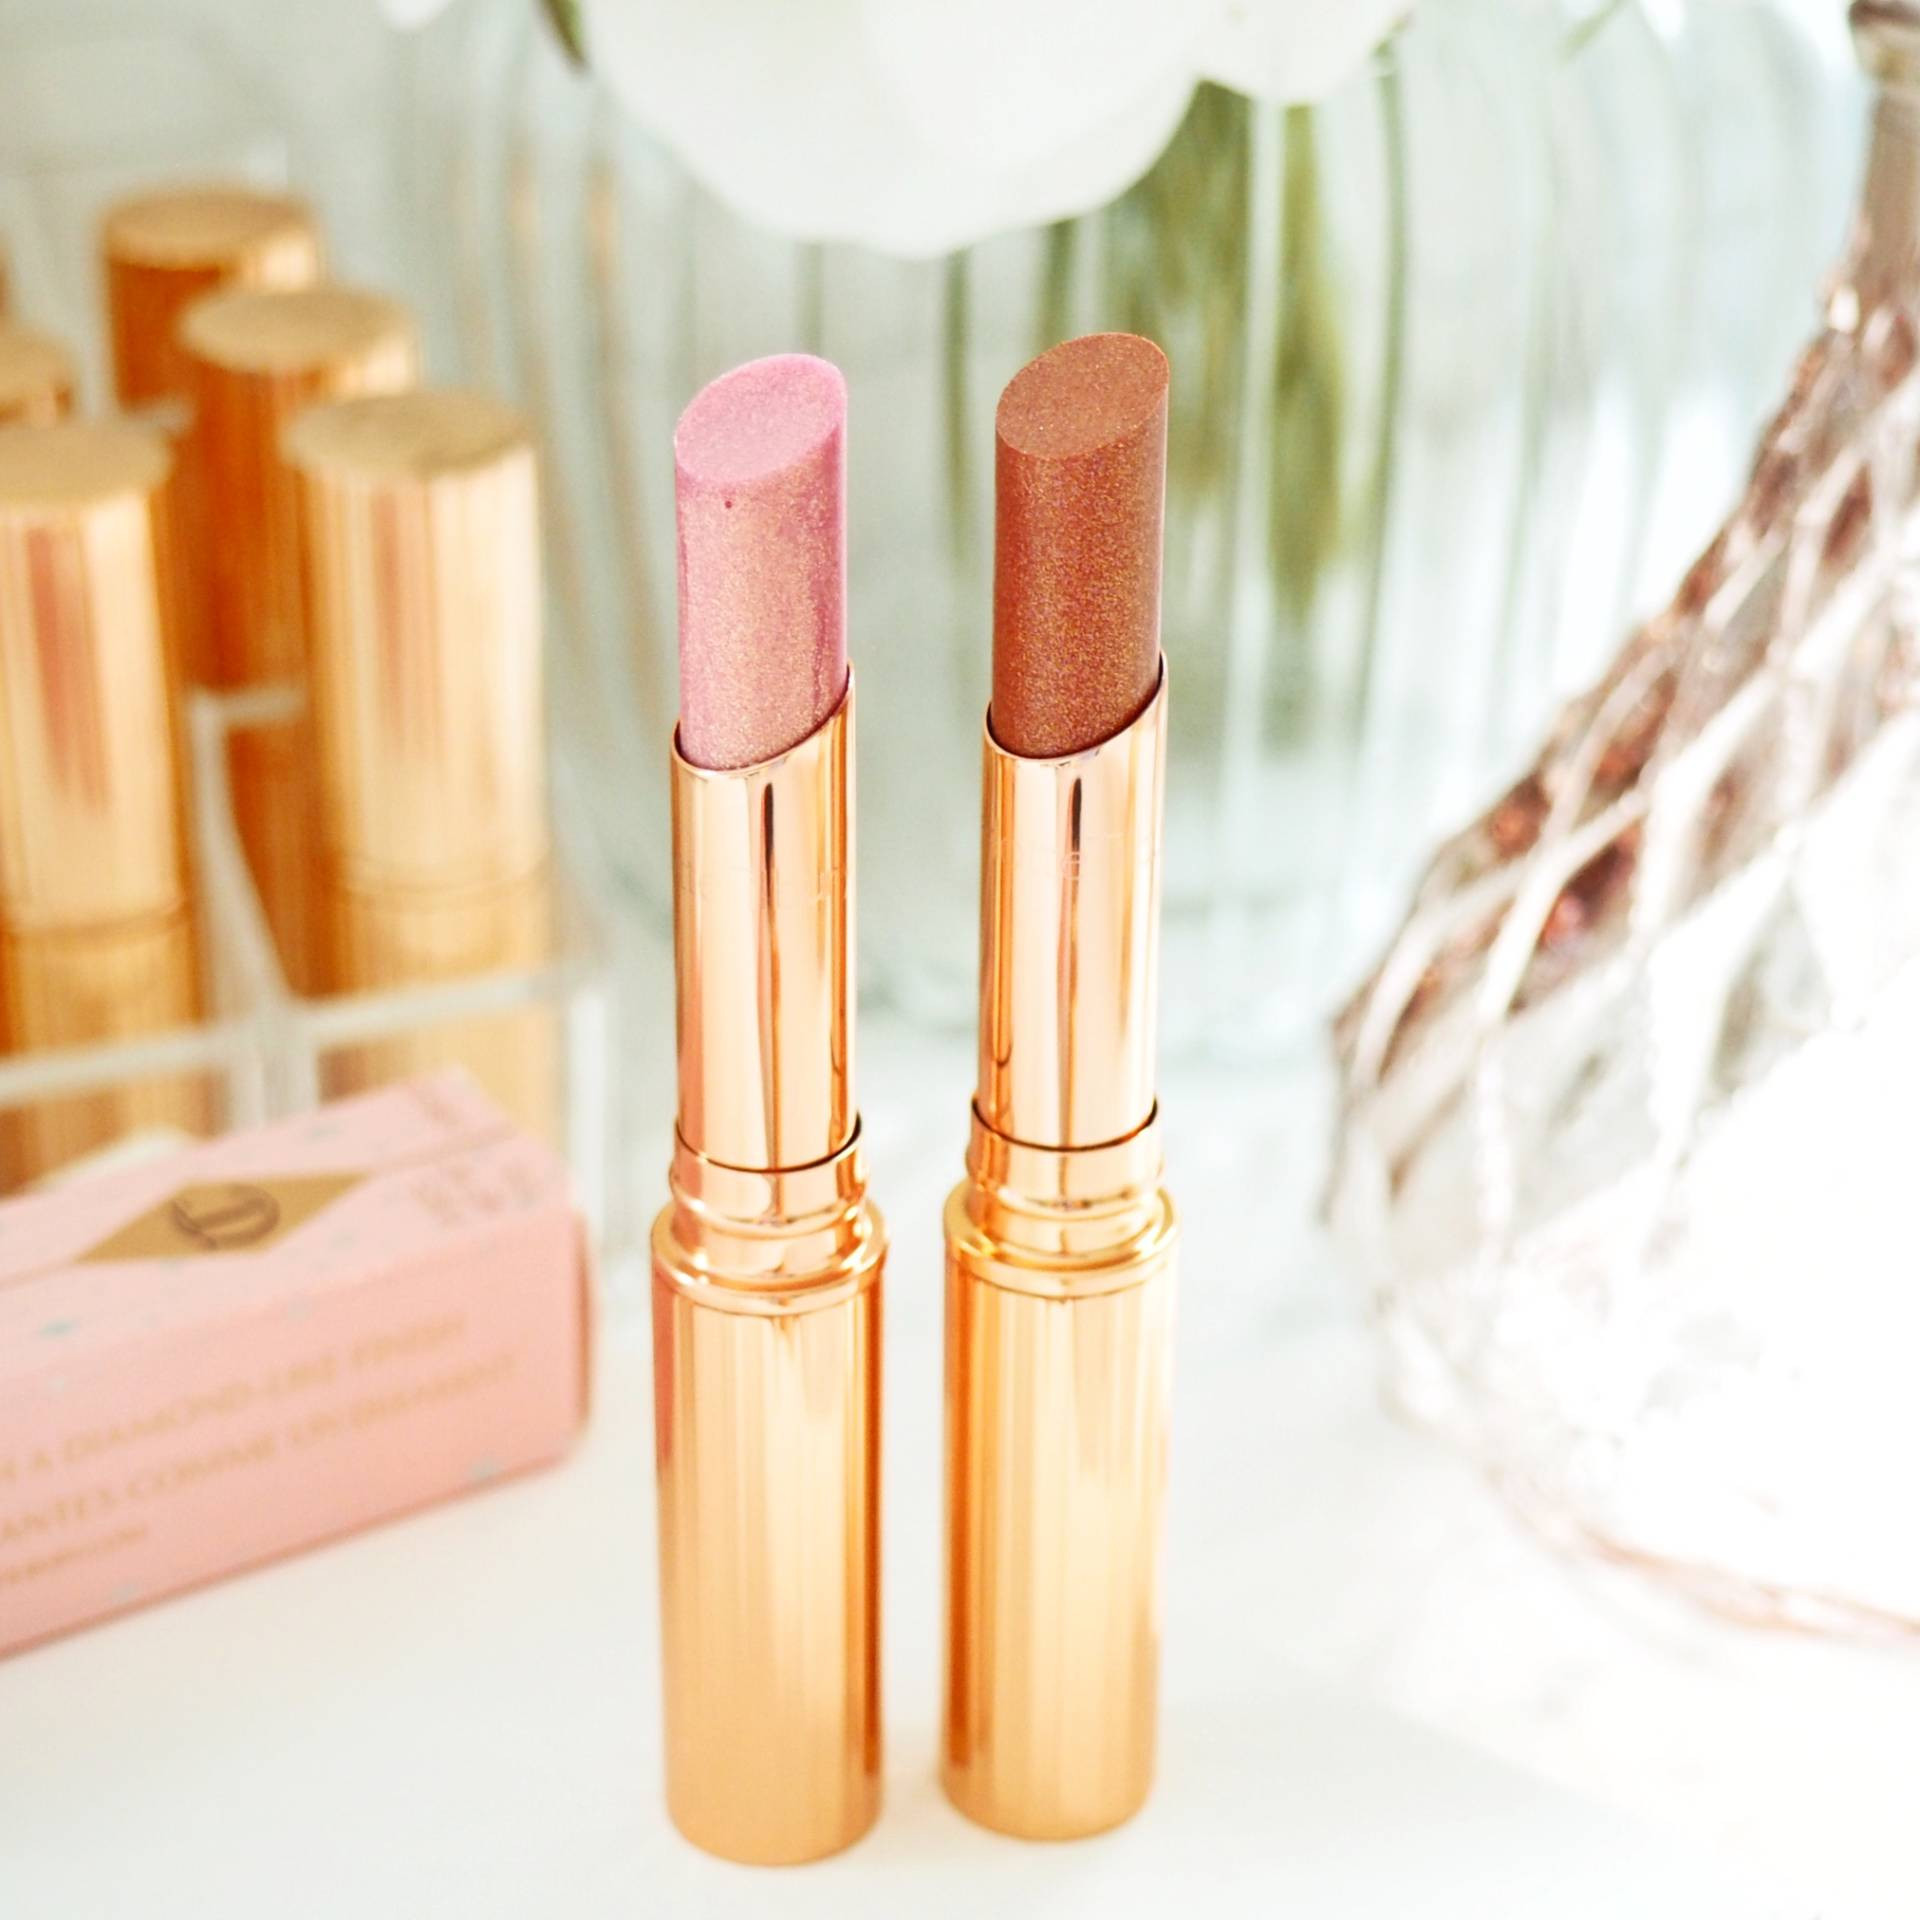 Charlotte_Tilbury_Pillow_Talk_Diamonds_Lipsticks_Review